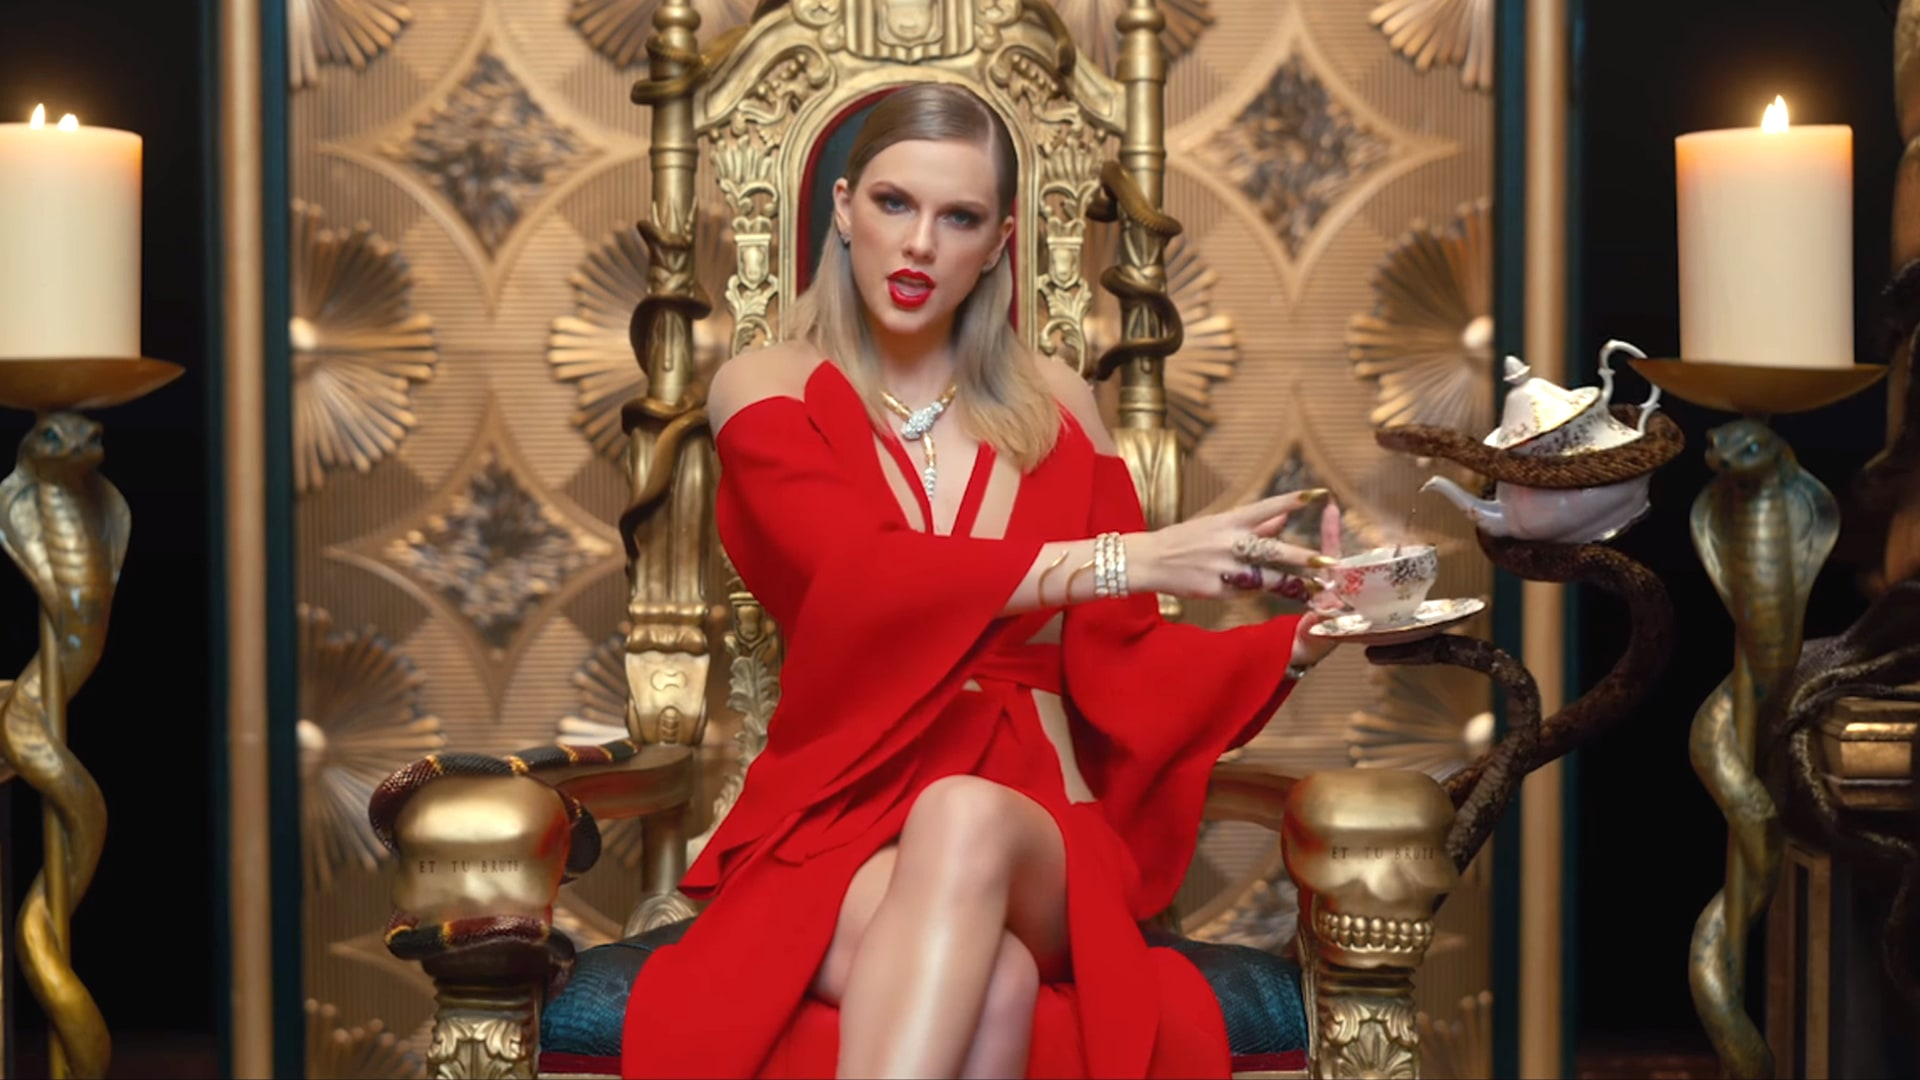 taylor-swift-ready-for-it-second-single-reputation-1504699963622